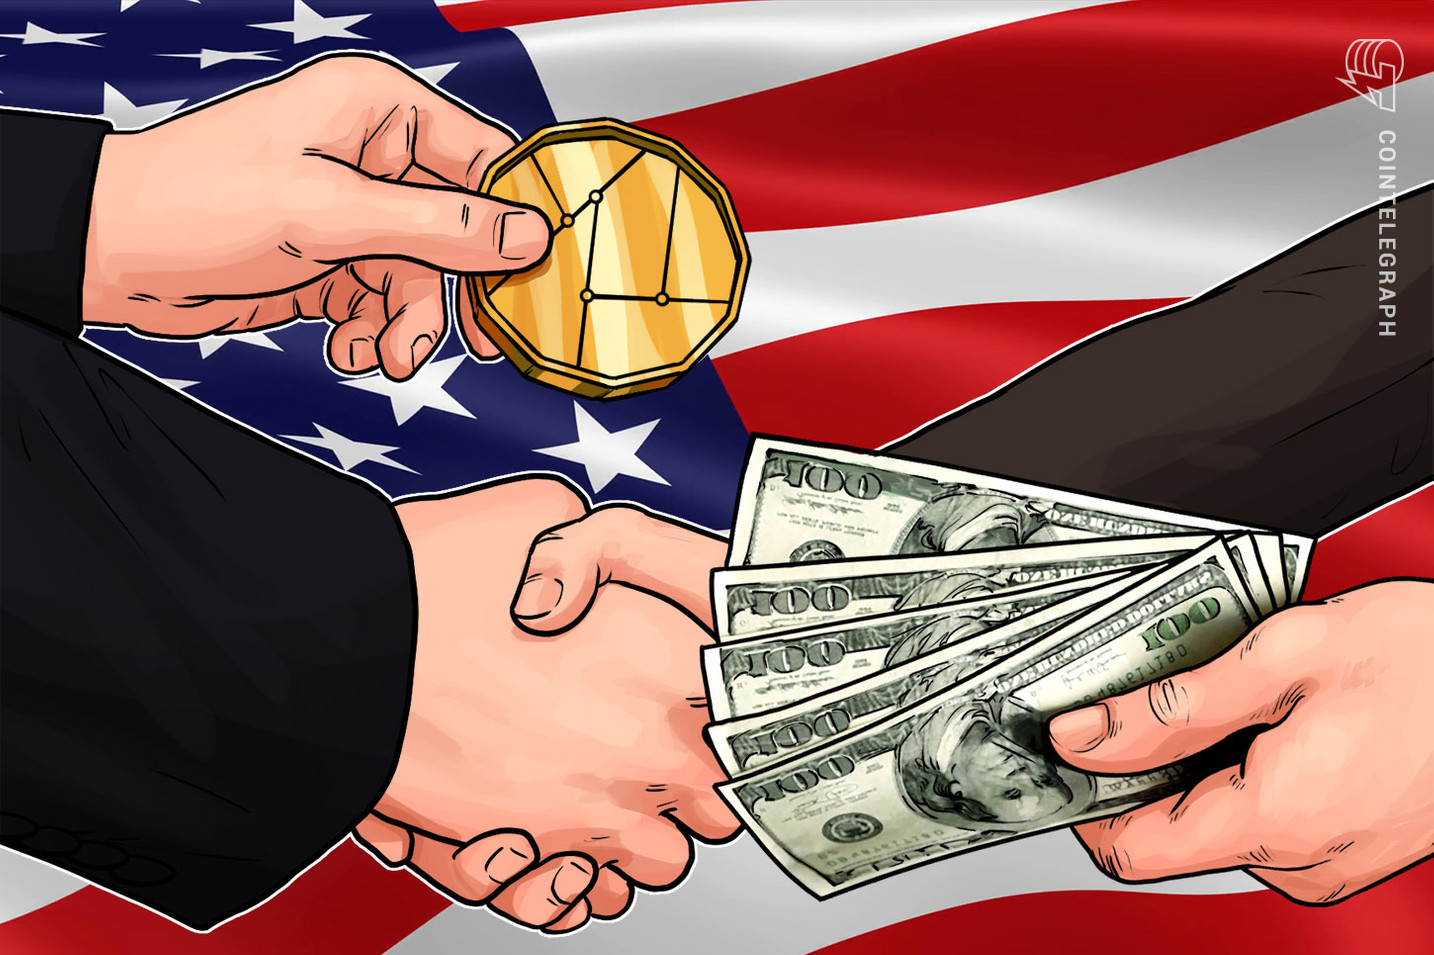 Post-Hack, Coincheck Reveals Plans to Expand to U.S. Market